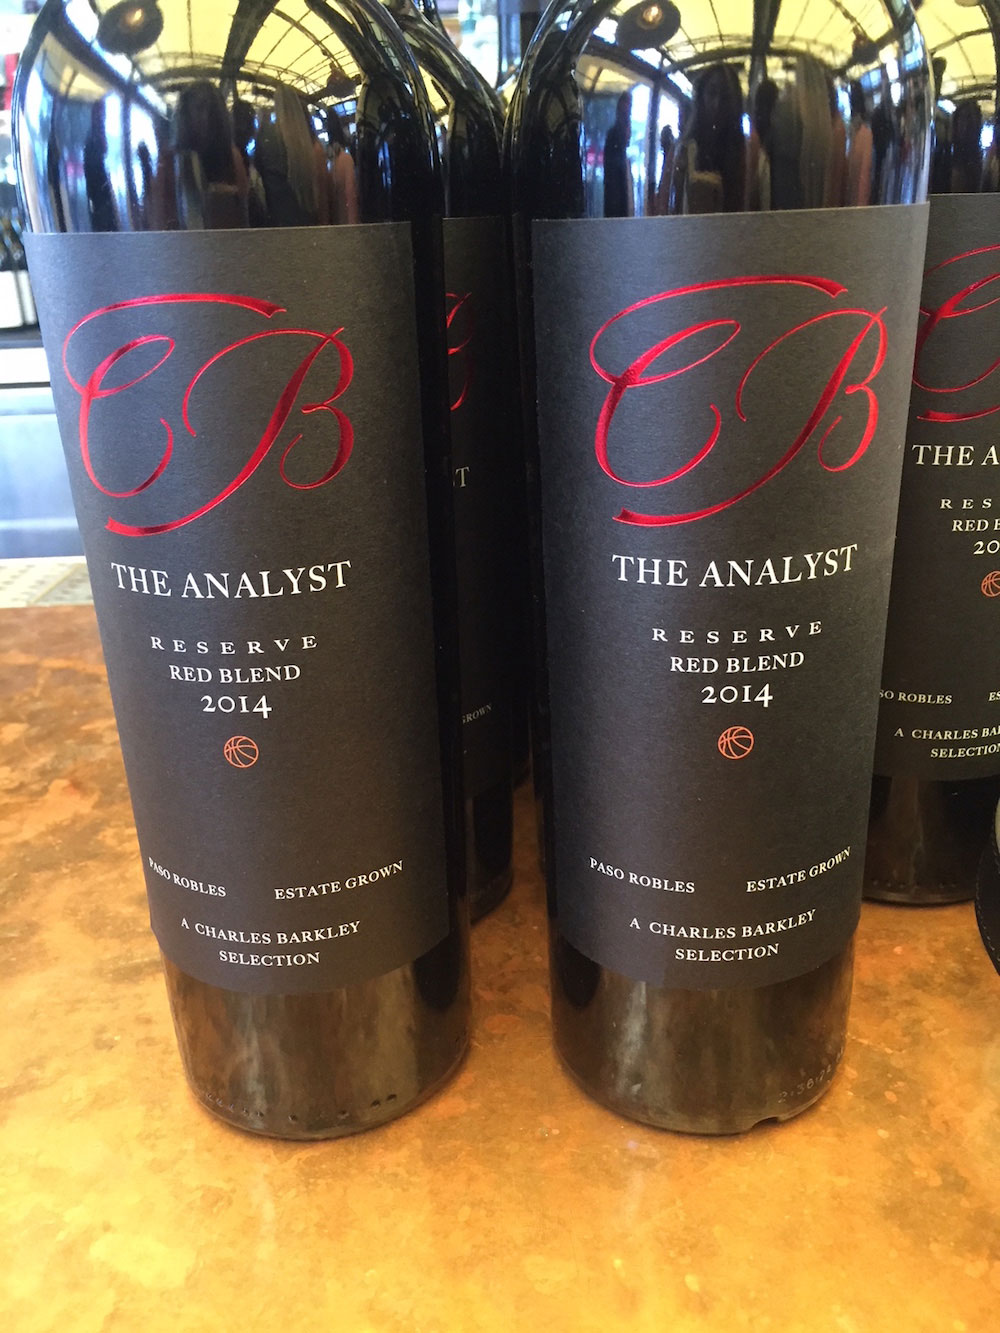 The Analyst is a reserve red blend